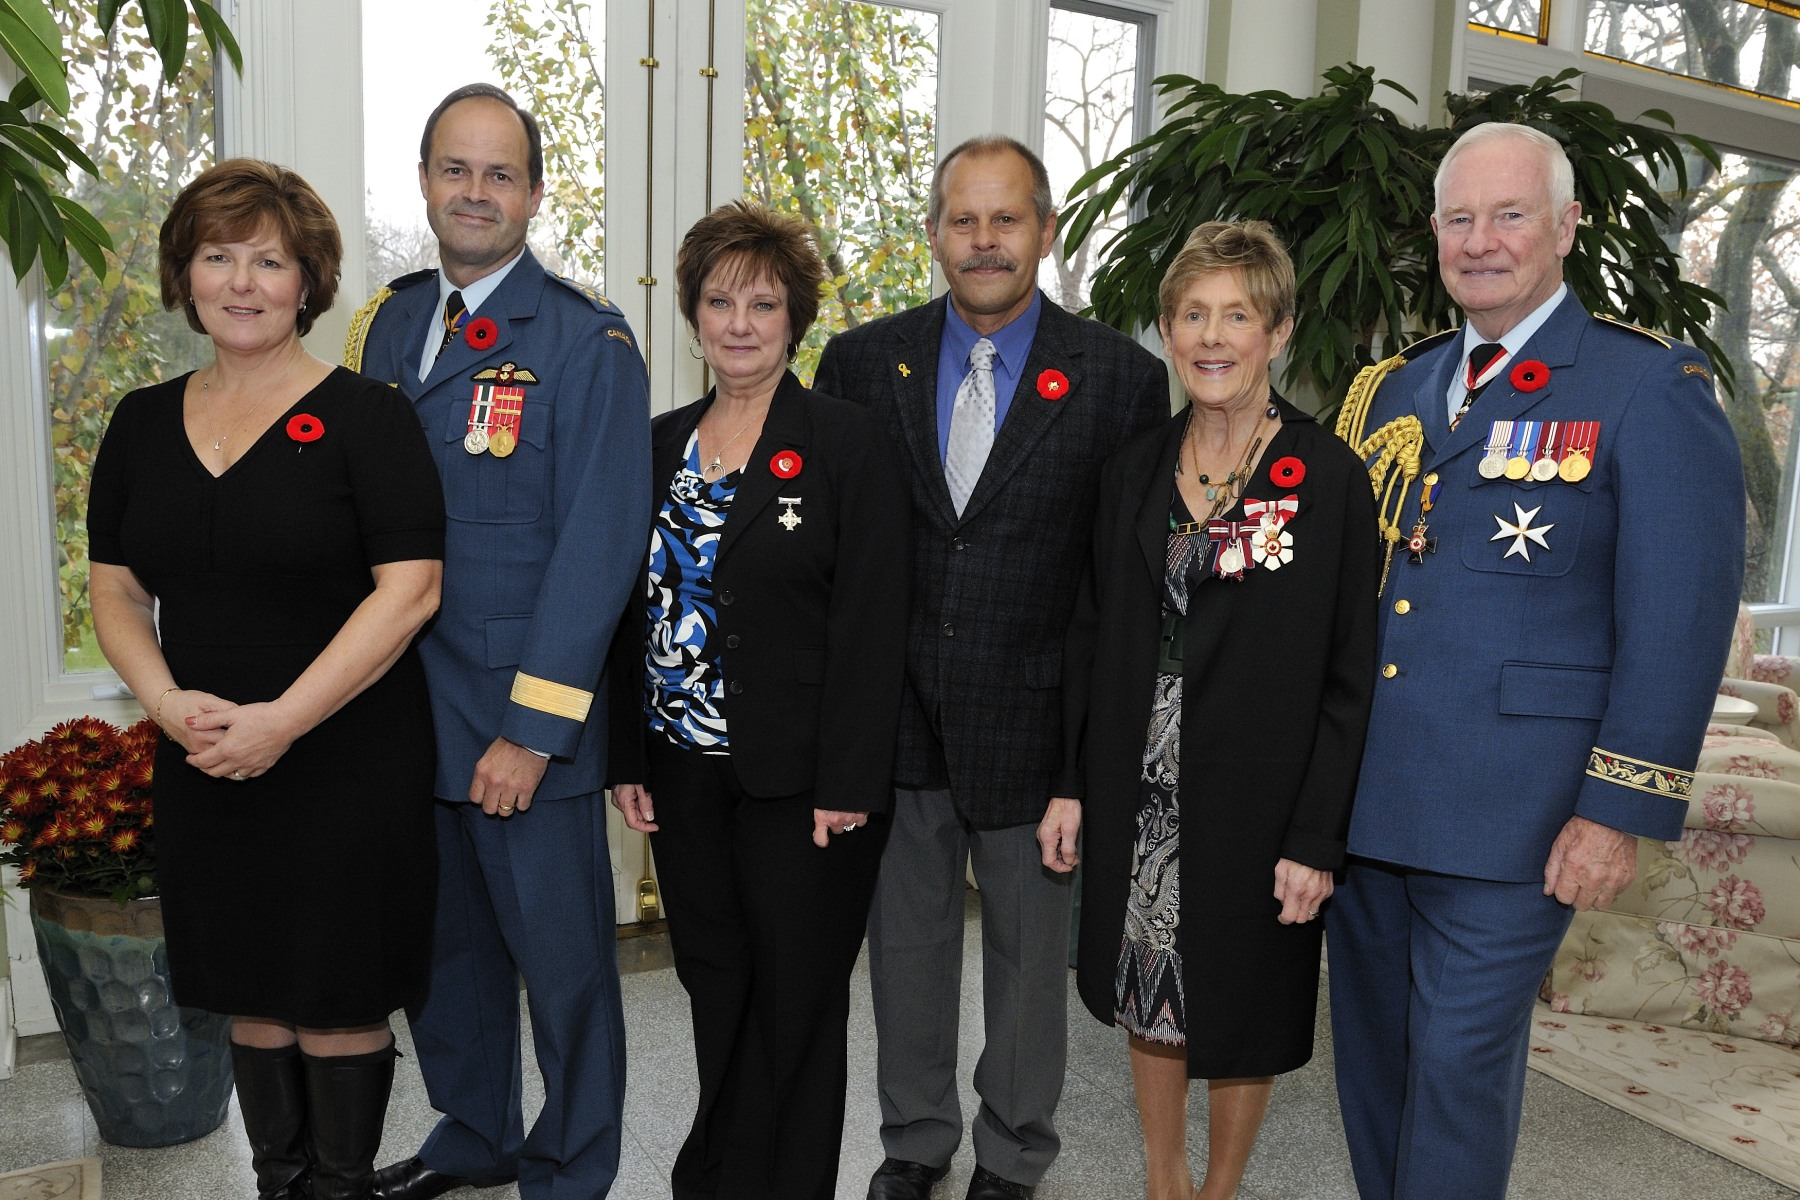 Following the ceremony, Their Excellencies hosted a luncheon at Rideau Hall to pay tribute to the 2012 National Silver Cross Mother, Mrs. Roxanne Priede. Each year, the National Silver Cross Mother is chosen by The Royal Canadian Legion to attend the National Remembrance Day Ceremony on behalf of all Canadian mothers who have lost children in the service to their country.